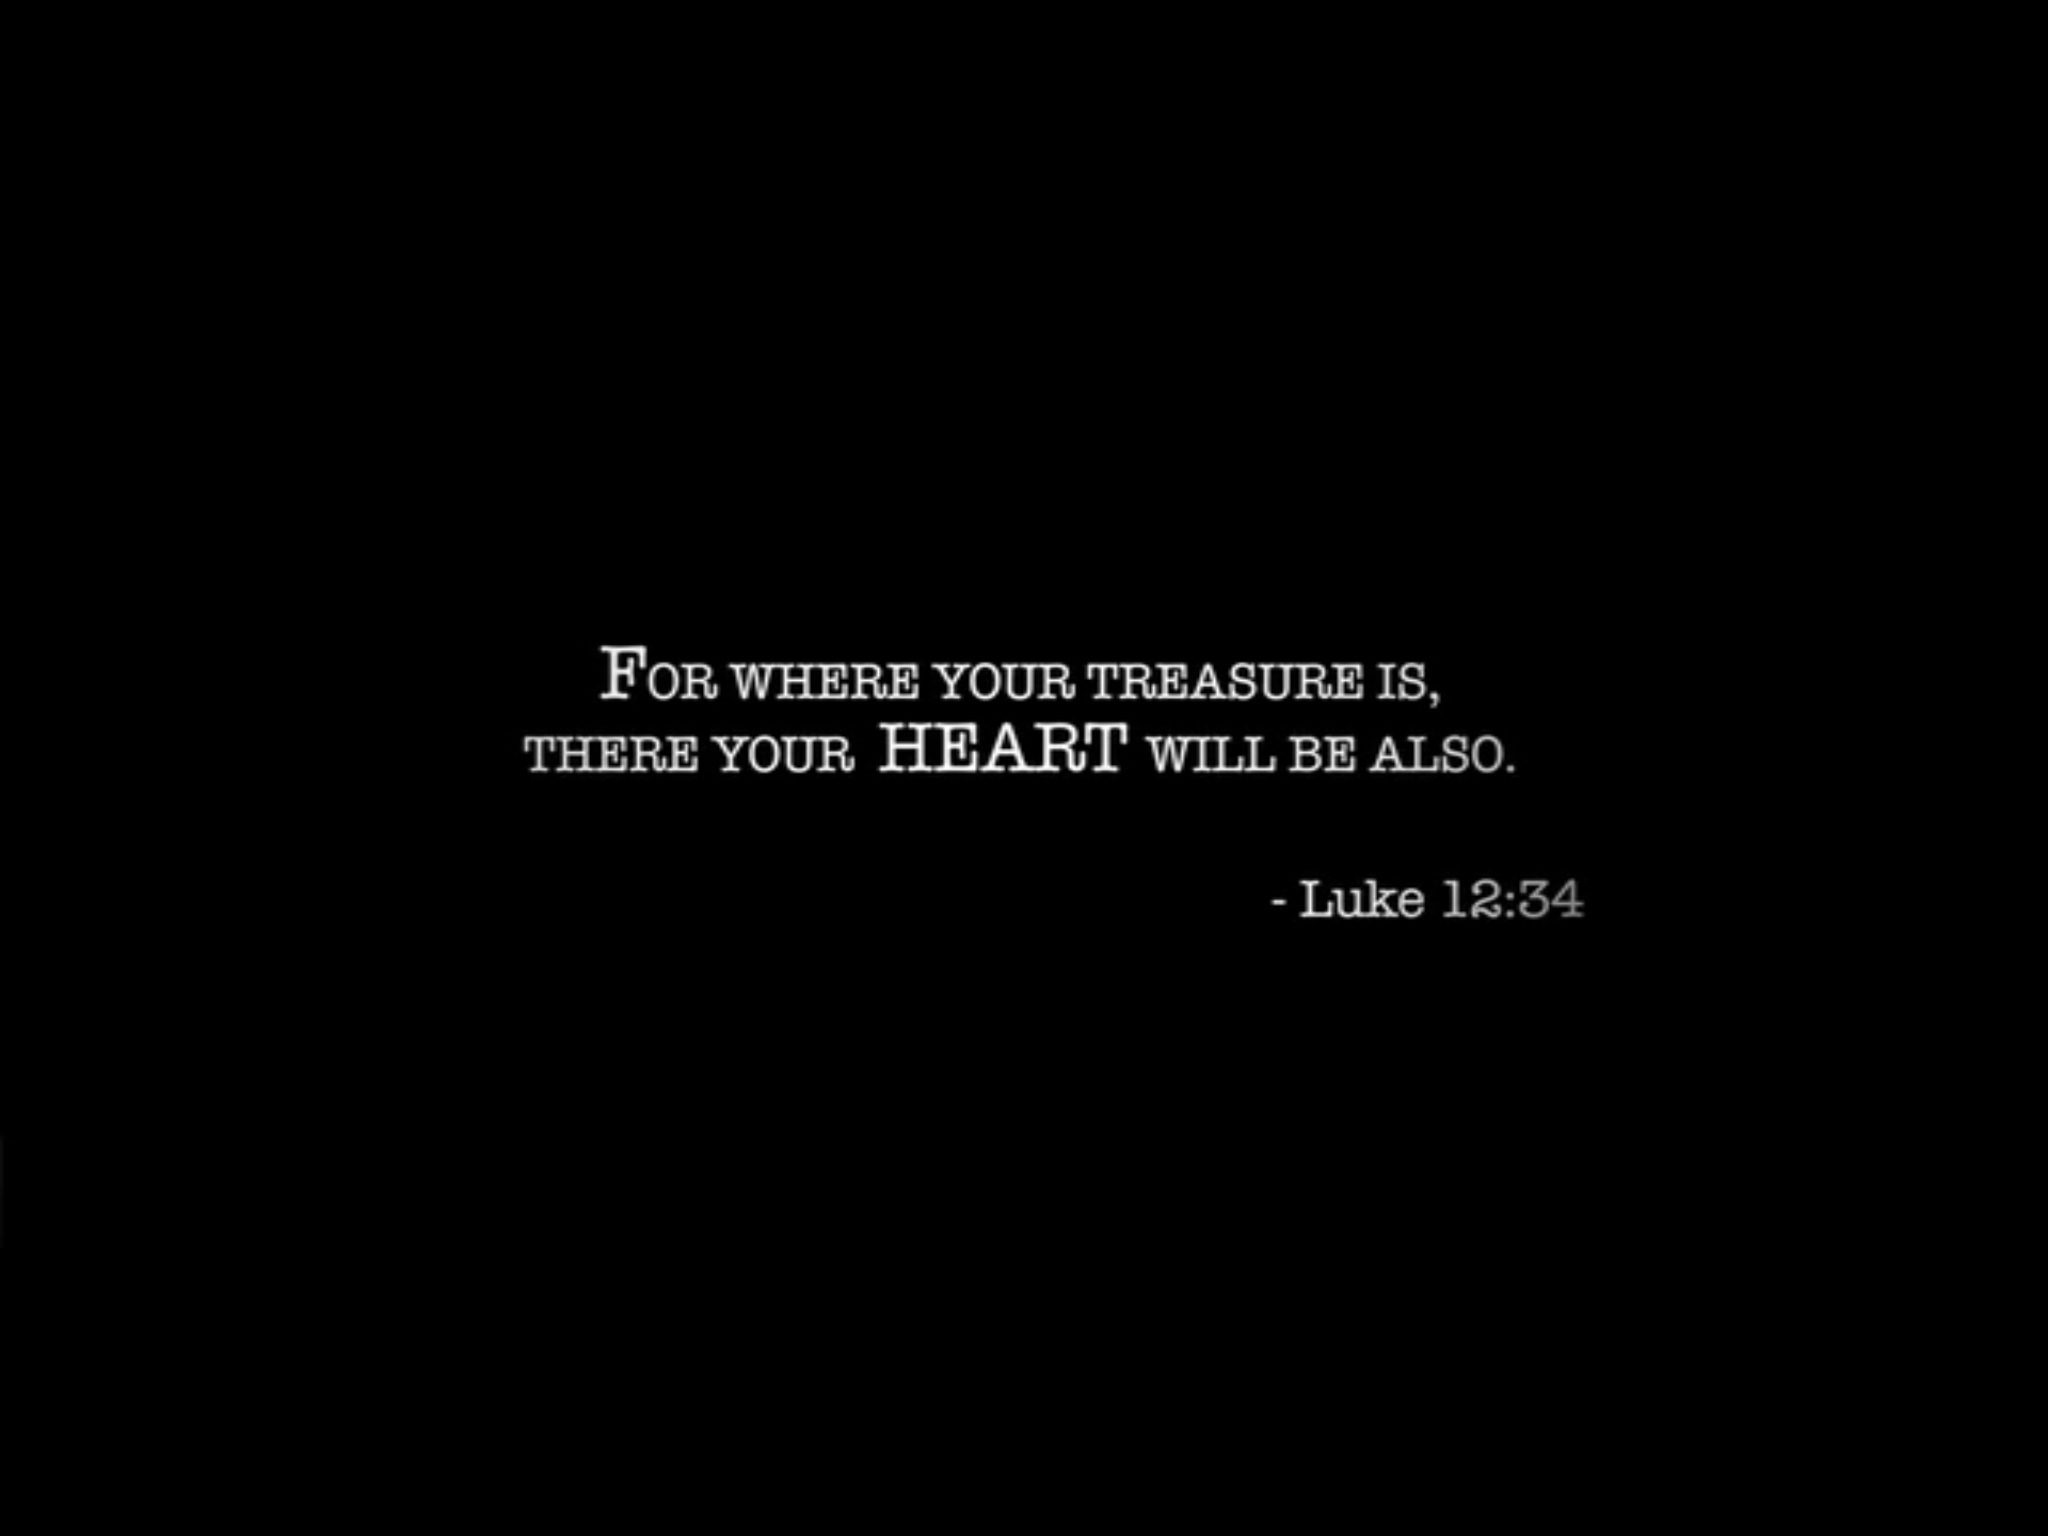 Interesting sayings for where your treasure is there your heart will be also